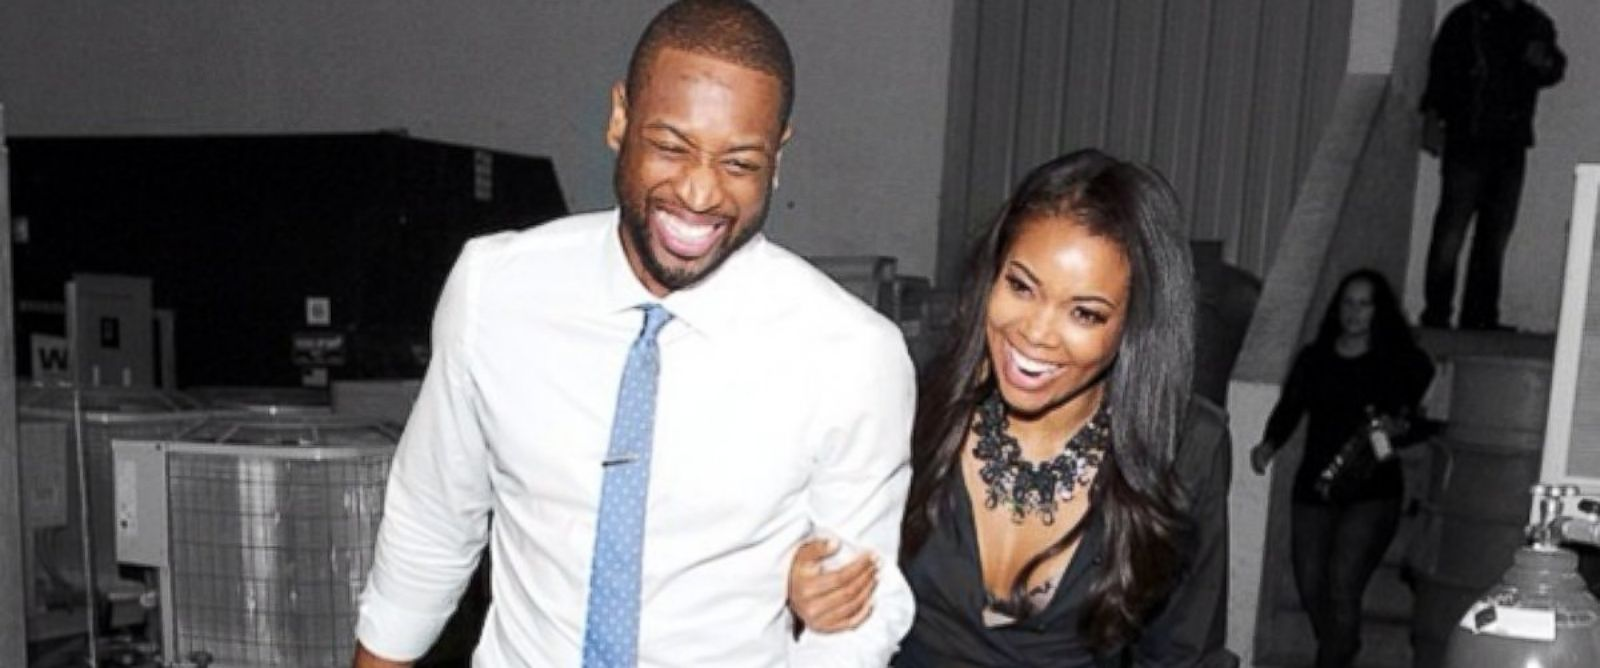 """PHOTO: Gabrielle Union posted this image to her Instagram on March 16, 2014 with the caption, """"About last night... #pearlchampagnelounge."""""""